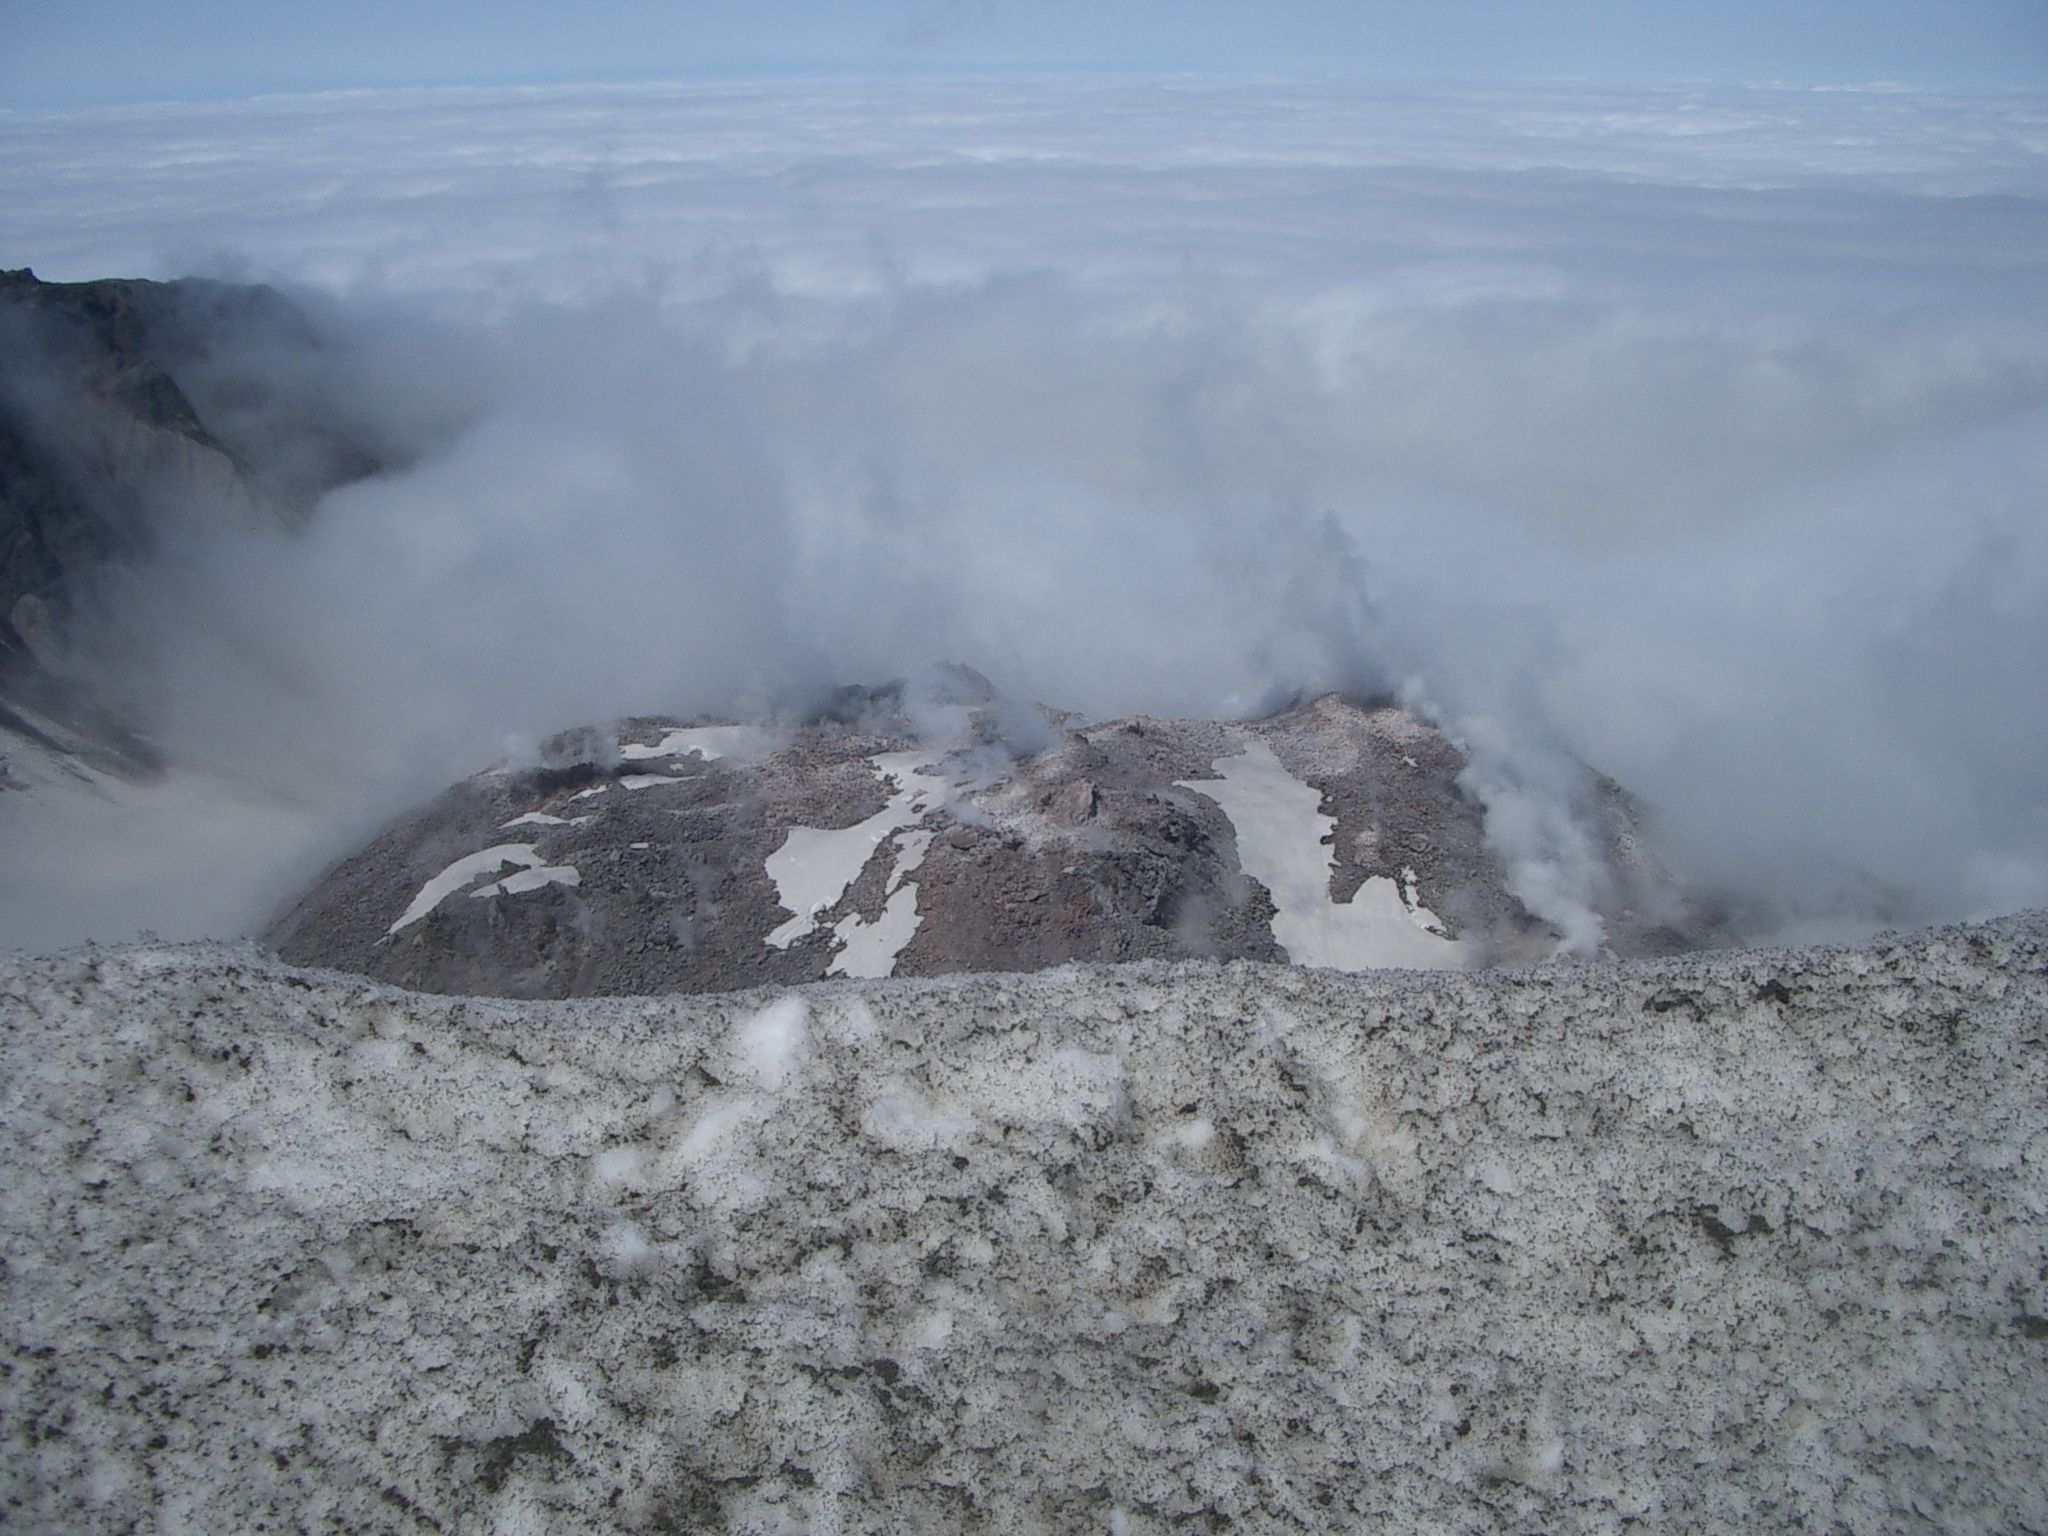 Mt. St. Helens crater and lava dome 2009